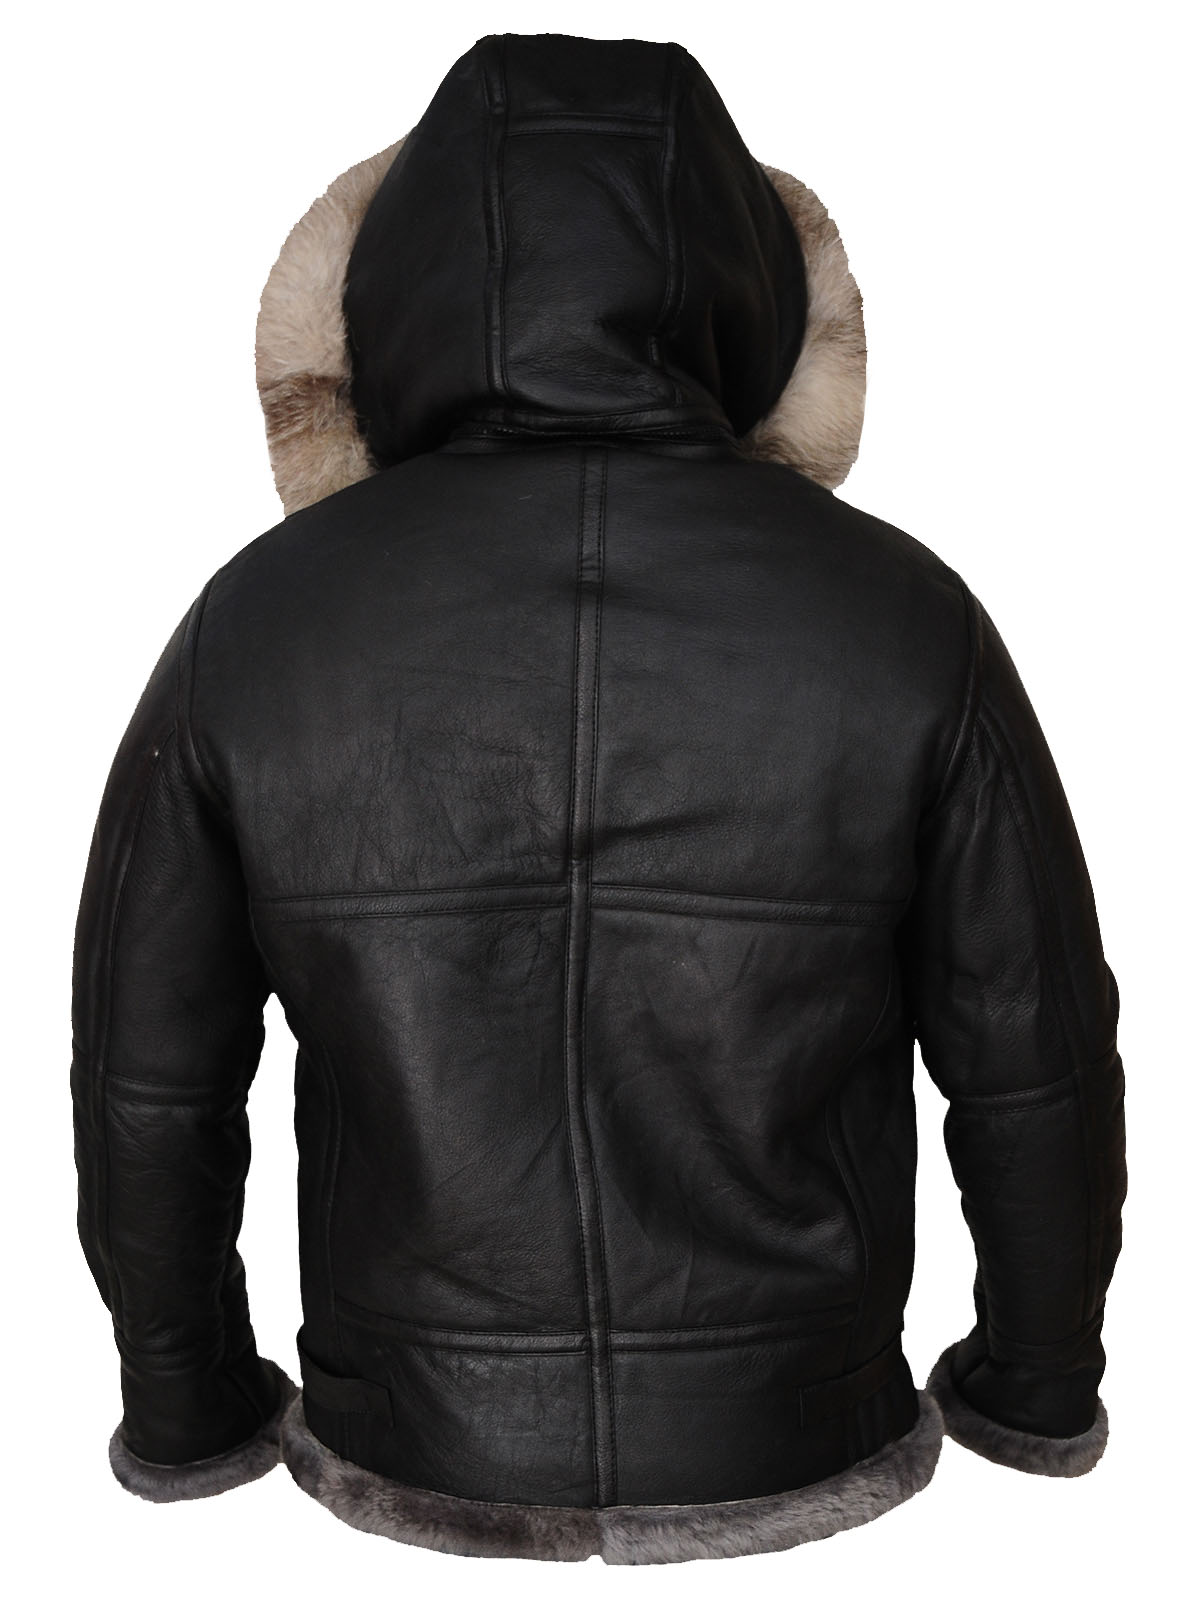 Men's black shearling jacket with hoodie